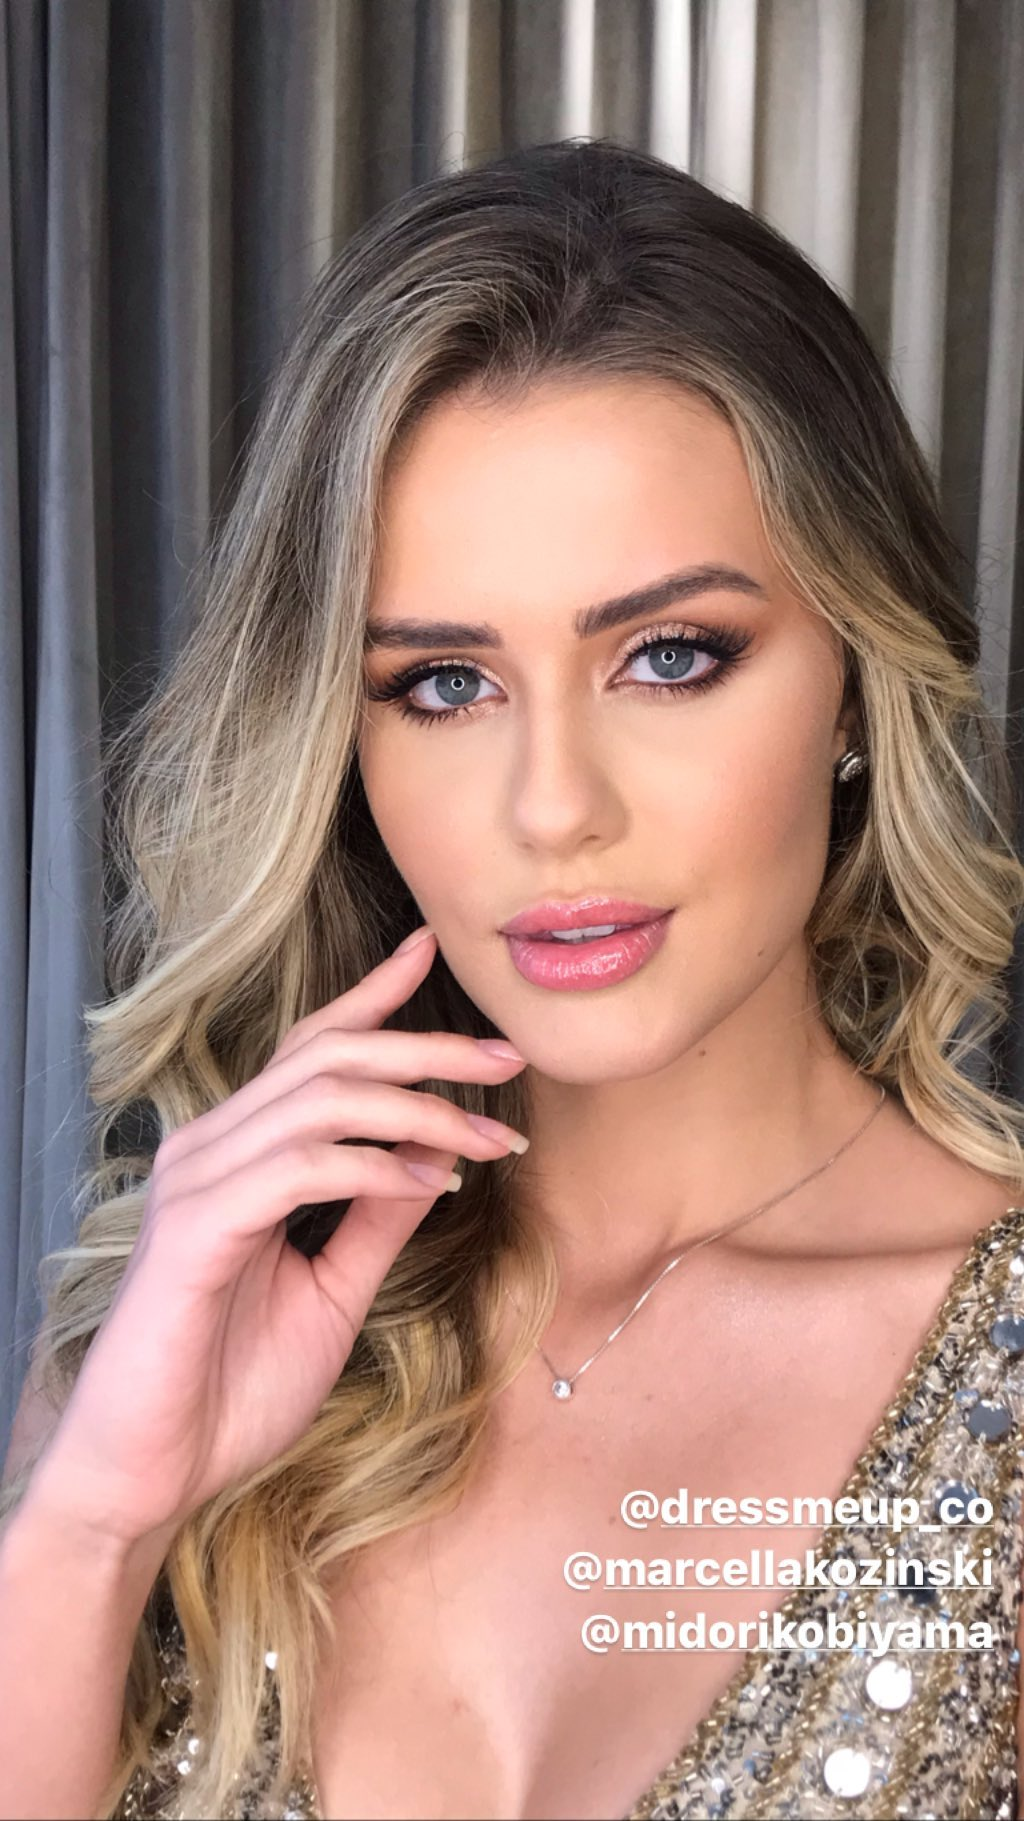 marcella kozinski de barros, miss curitiba 2020/3rd runner-up de miss tourism world 2019. - Página 7 Alex-758